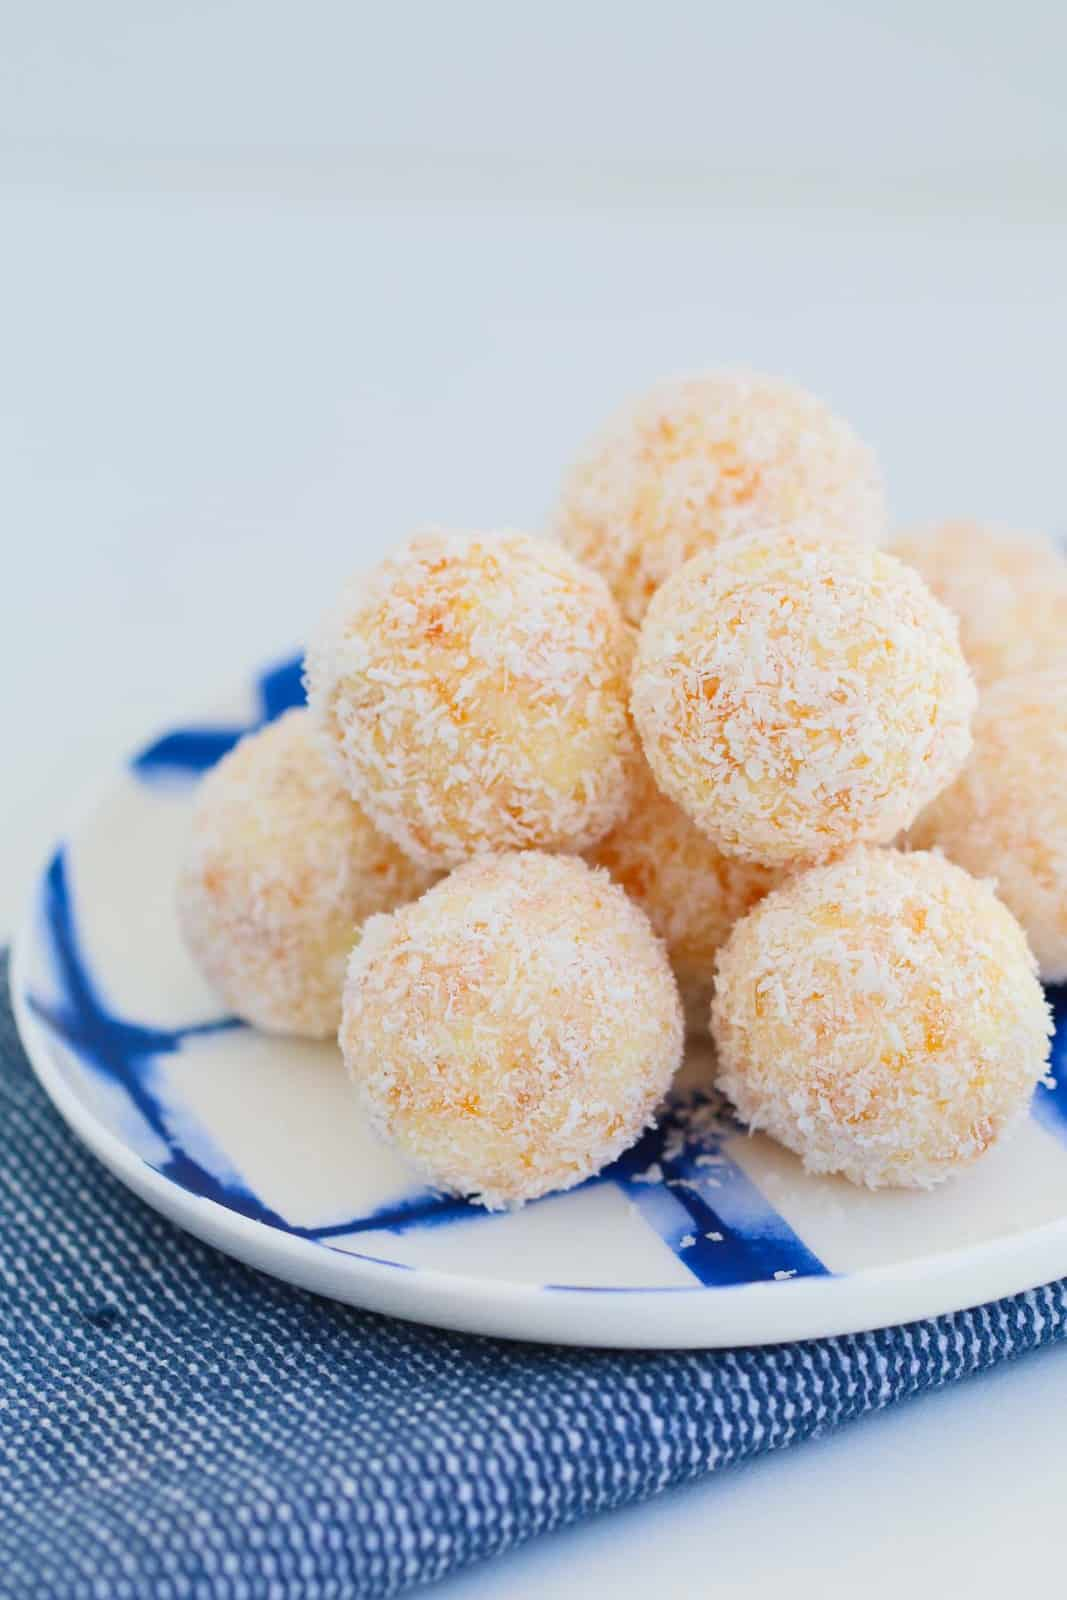 Coconut and apricot balls on a white and blue plate.